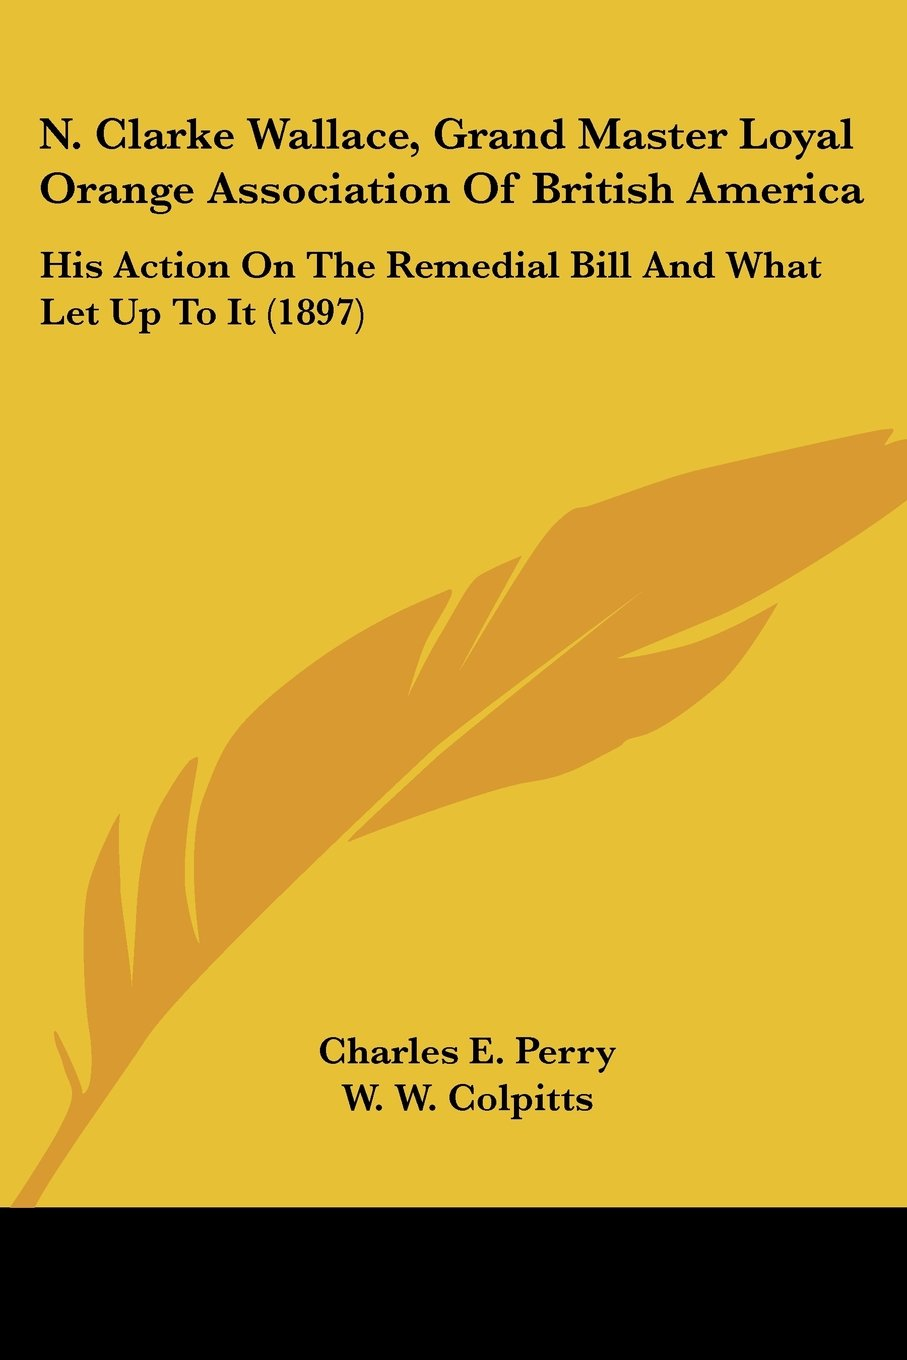 Download N. Clarke Wallace, Grand Master Loyal Orange Association Of British America: His Action On The Remedial Bill And What Let Up To It (1897) ebook